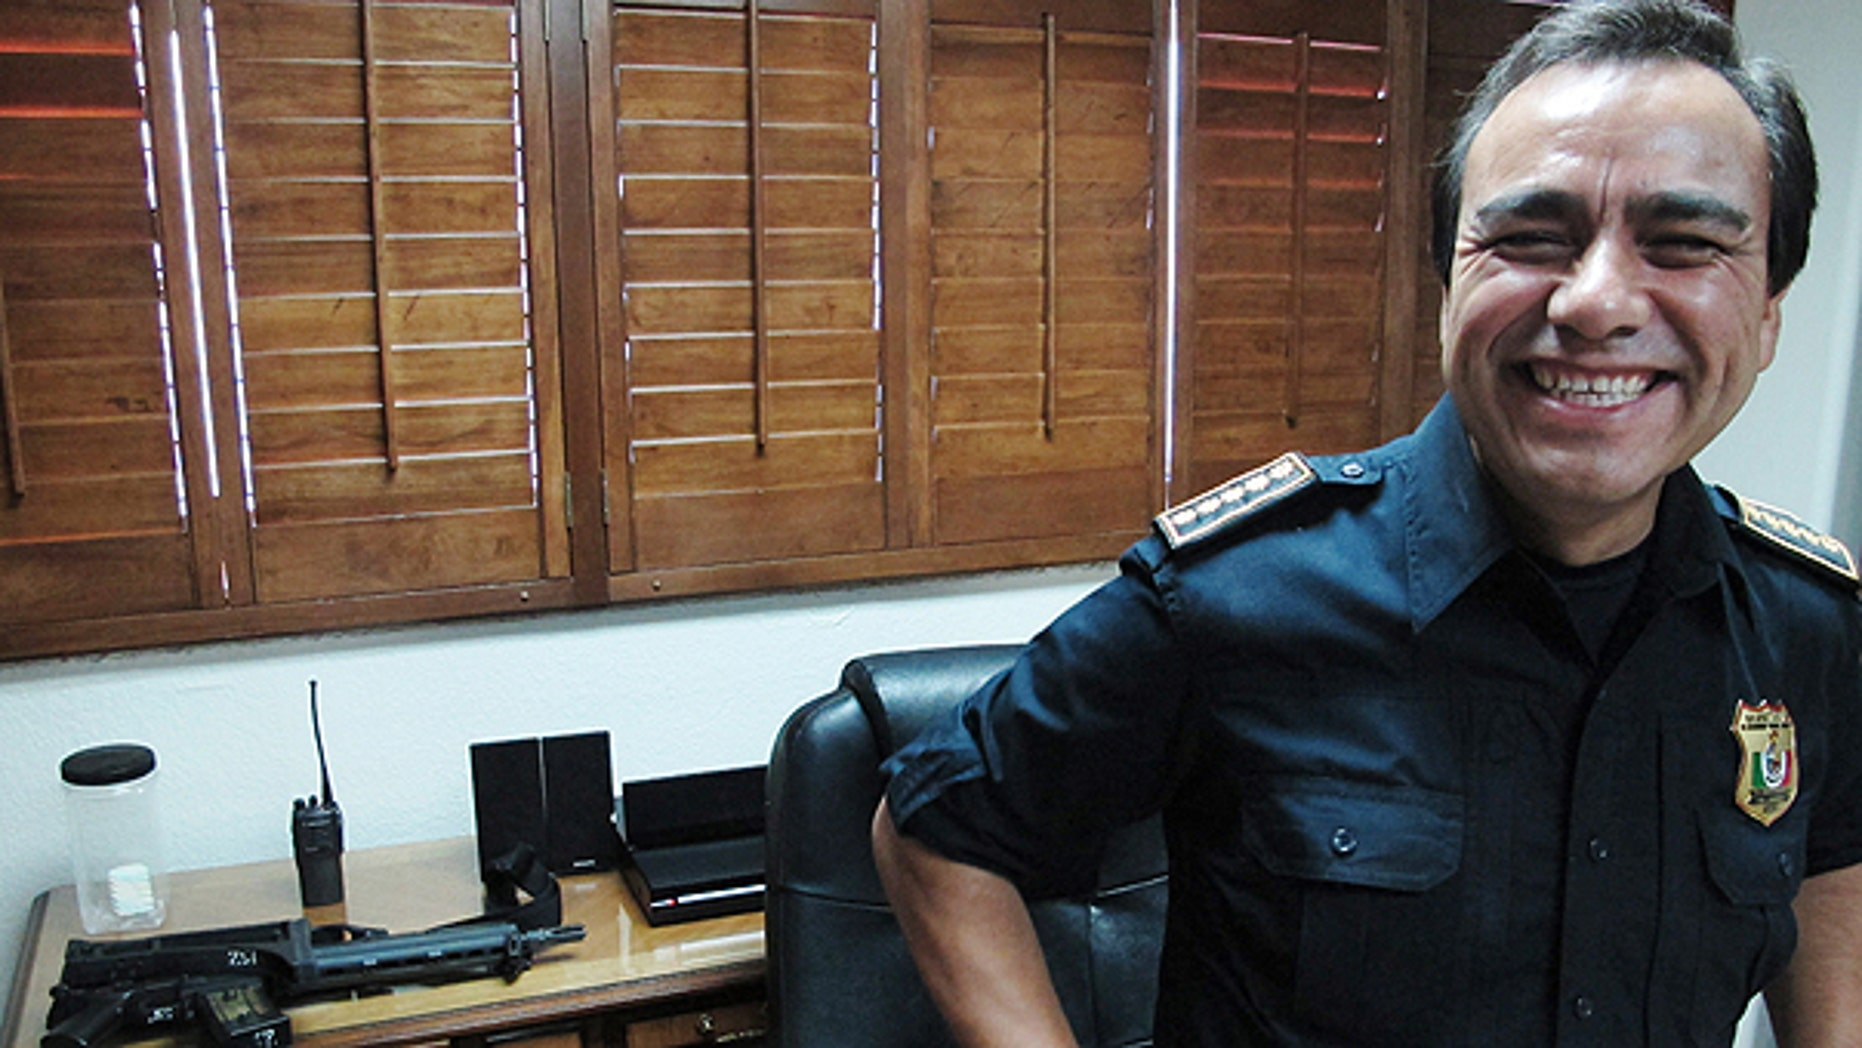 June 7: Julian Leyzaola, police chief of Juarez, smiles during an interview with foreign media in his office in Juarez, Mexico.